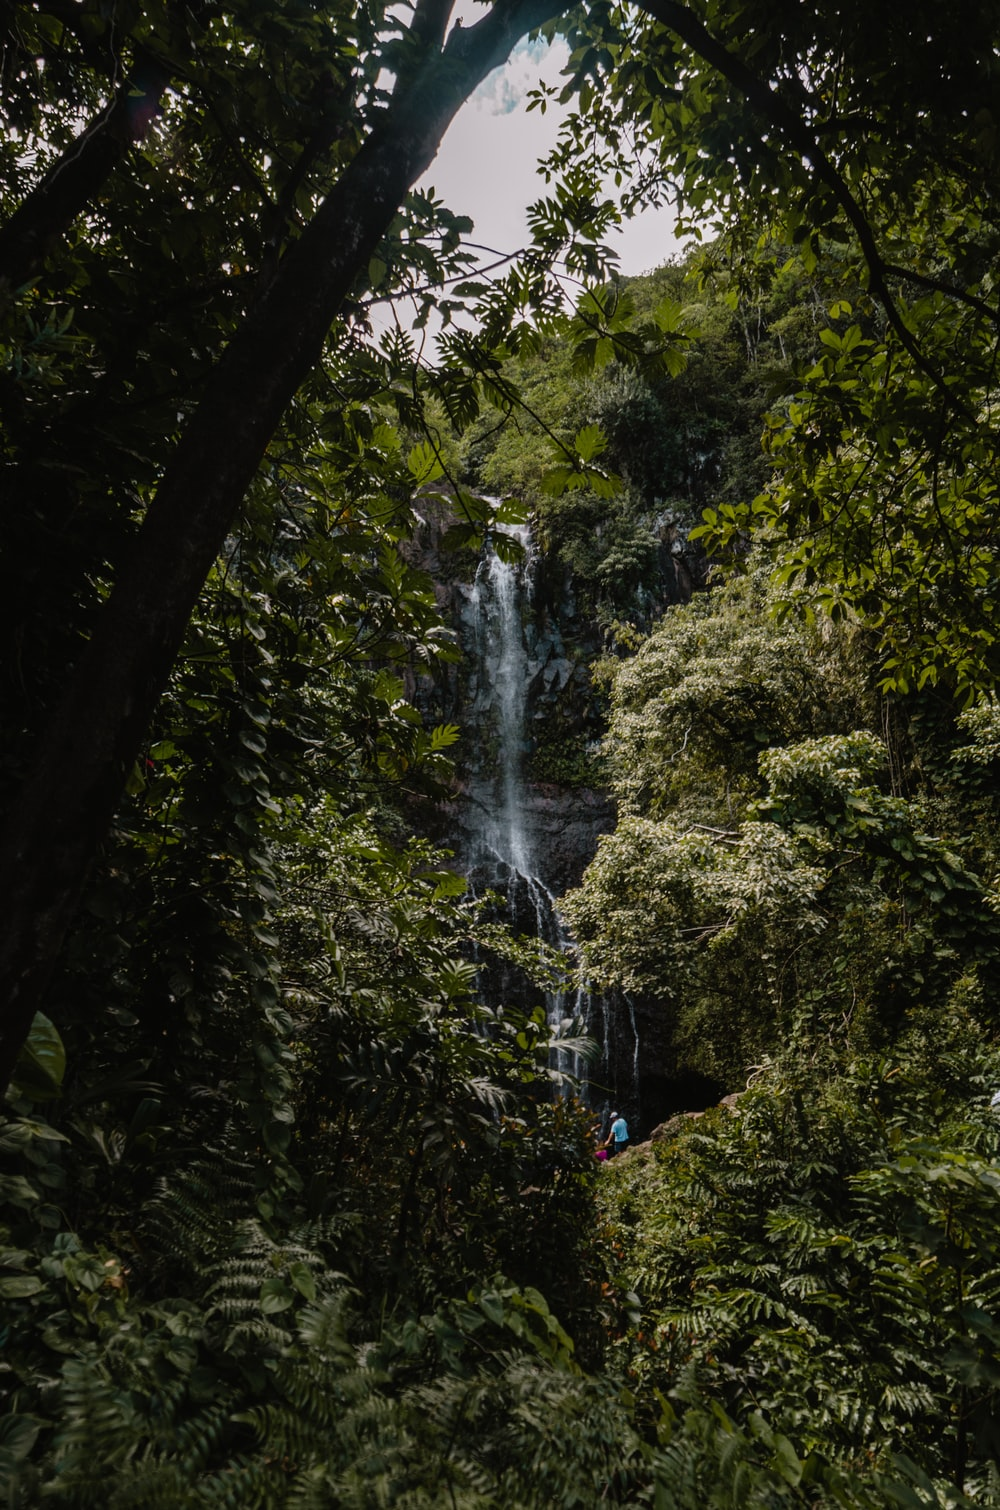 water falls at forest during daytime